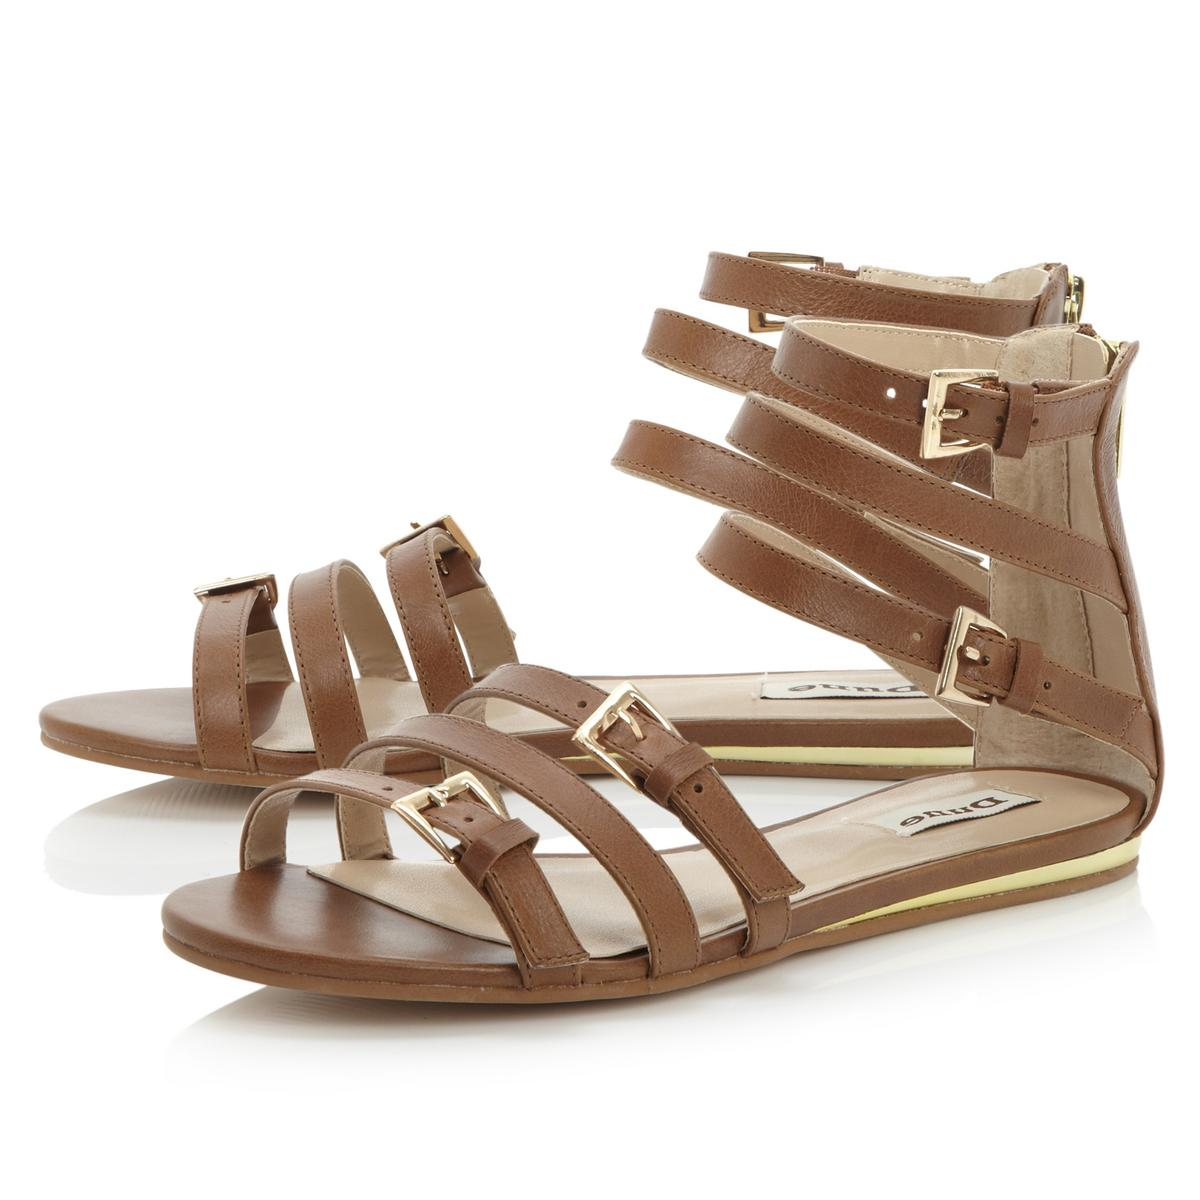 Women's sandals dune - Dune Ladies Jewel Womens Tan Brown Strappy Gladiator Flat Sandals Shoes Size 3 8